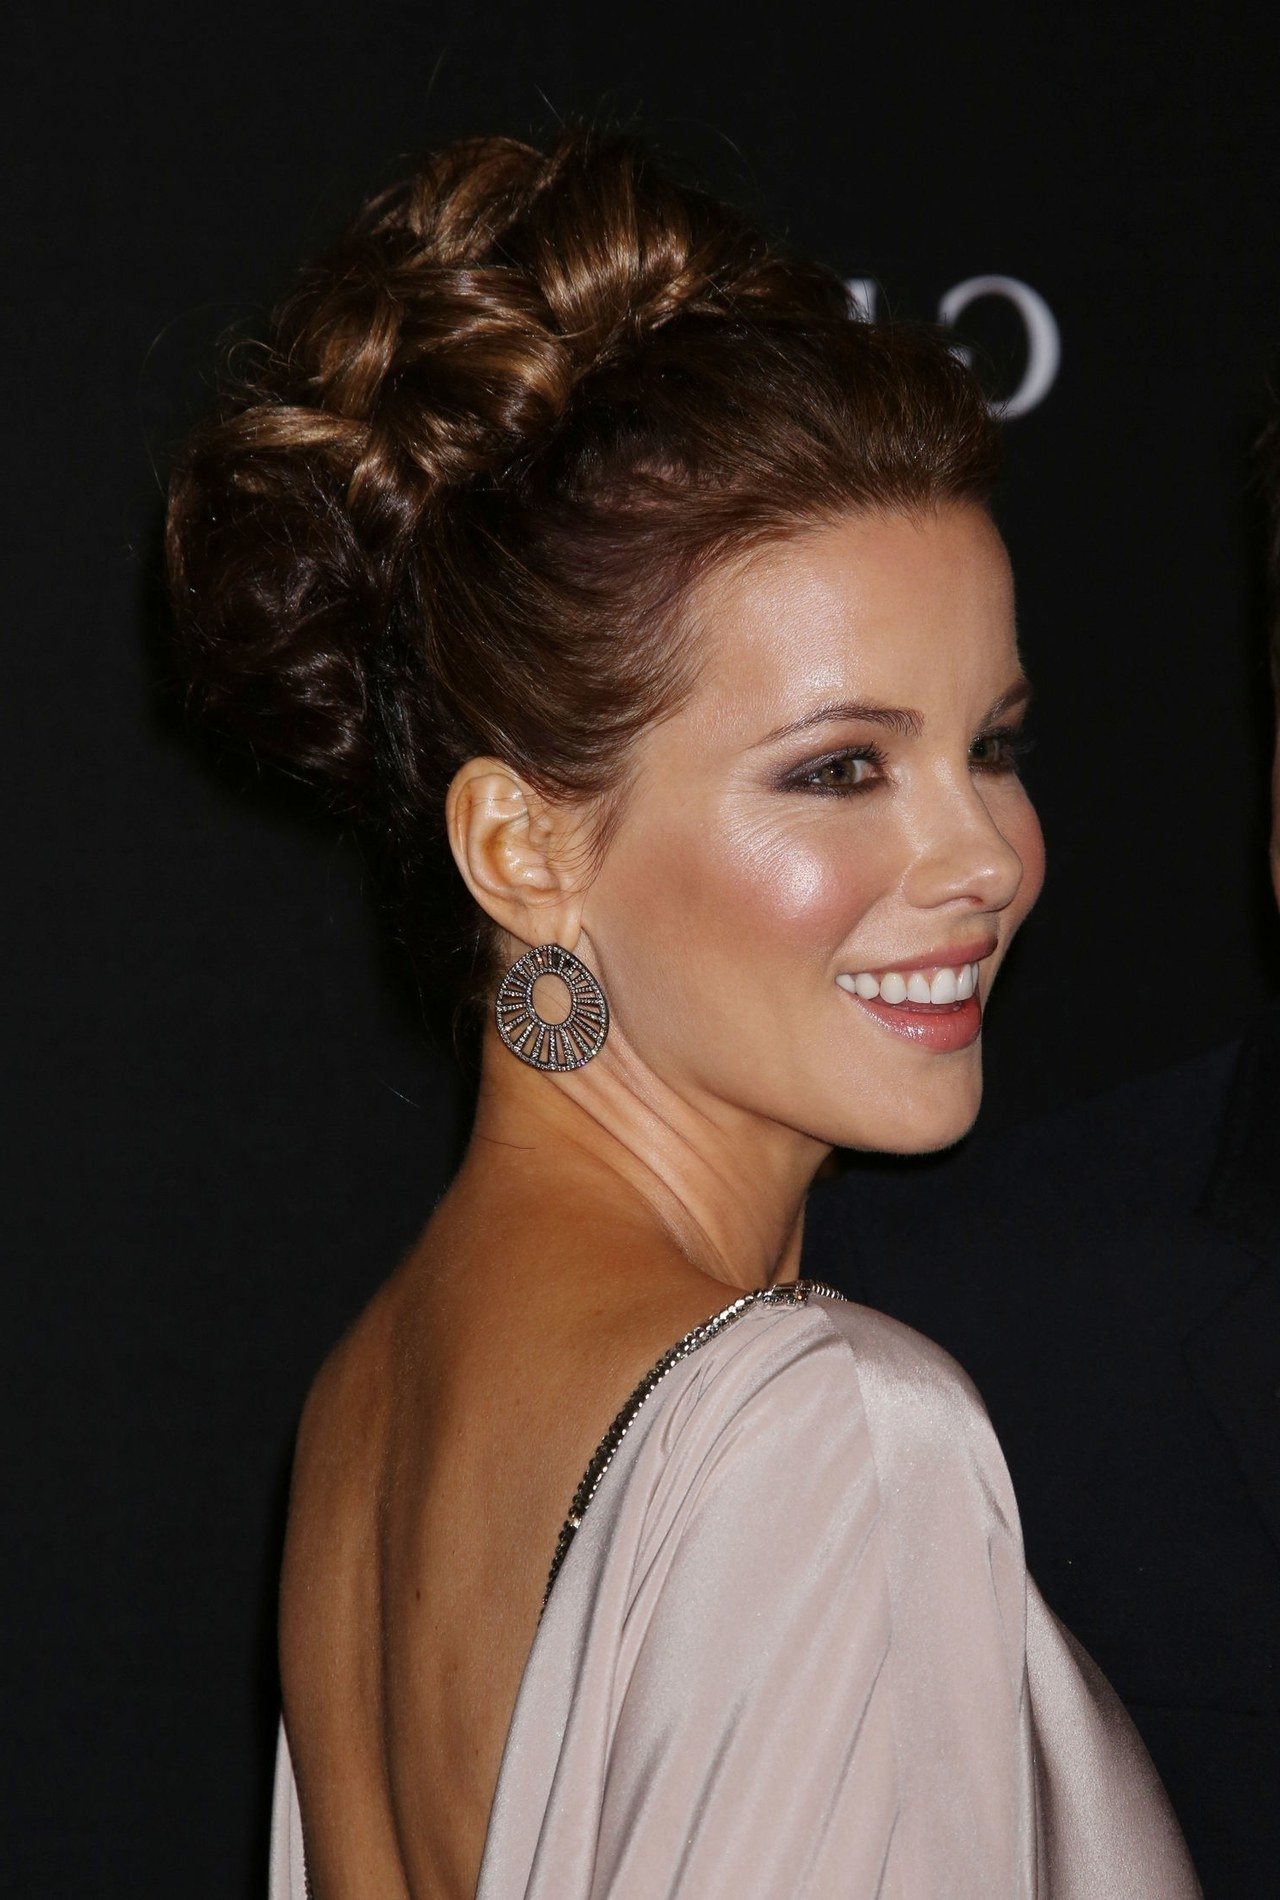 Today's Most Pinnable Hairstyle: Kate Beckinsale's Knotted Bun Updo With Regard To Updo Buns Hairstyles (View 12 of 15)